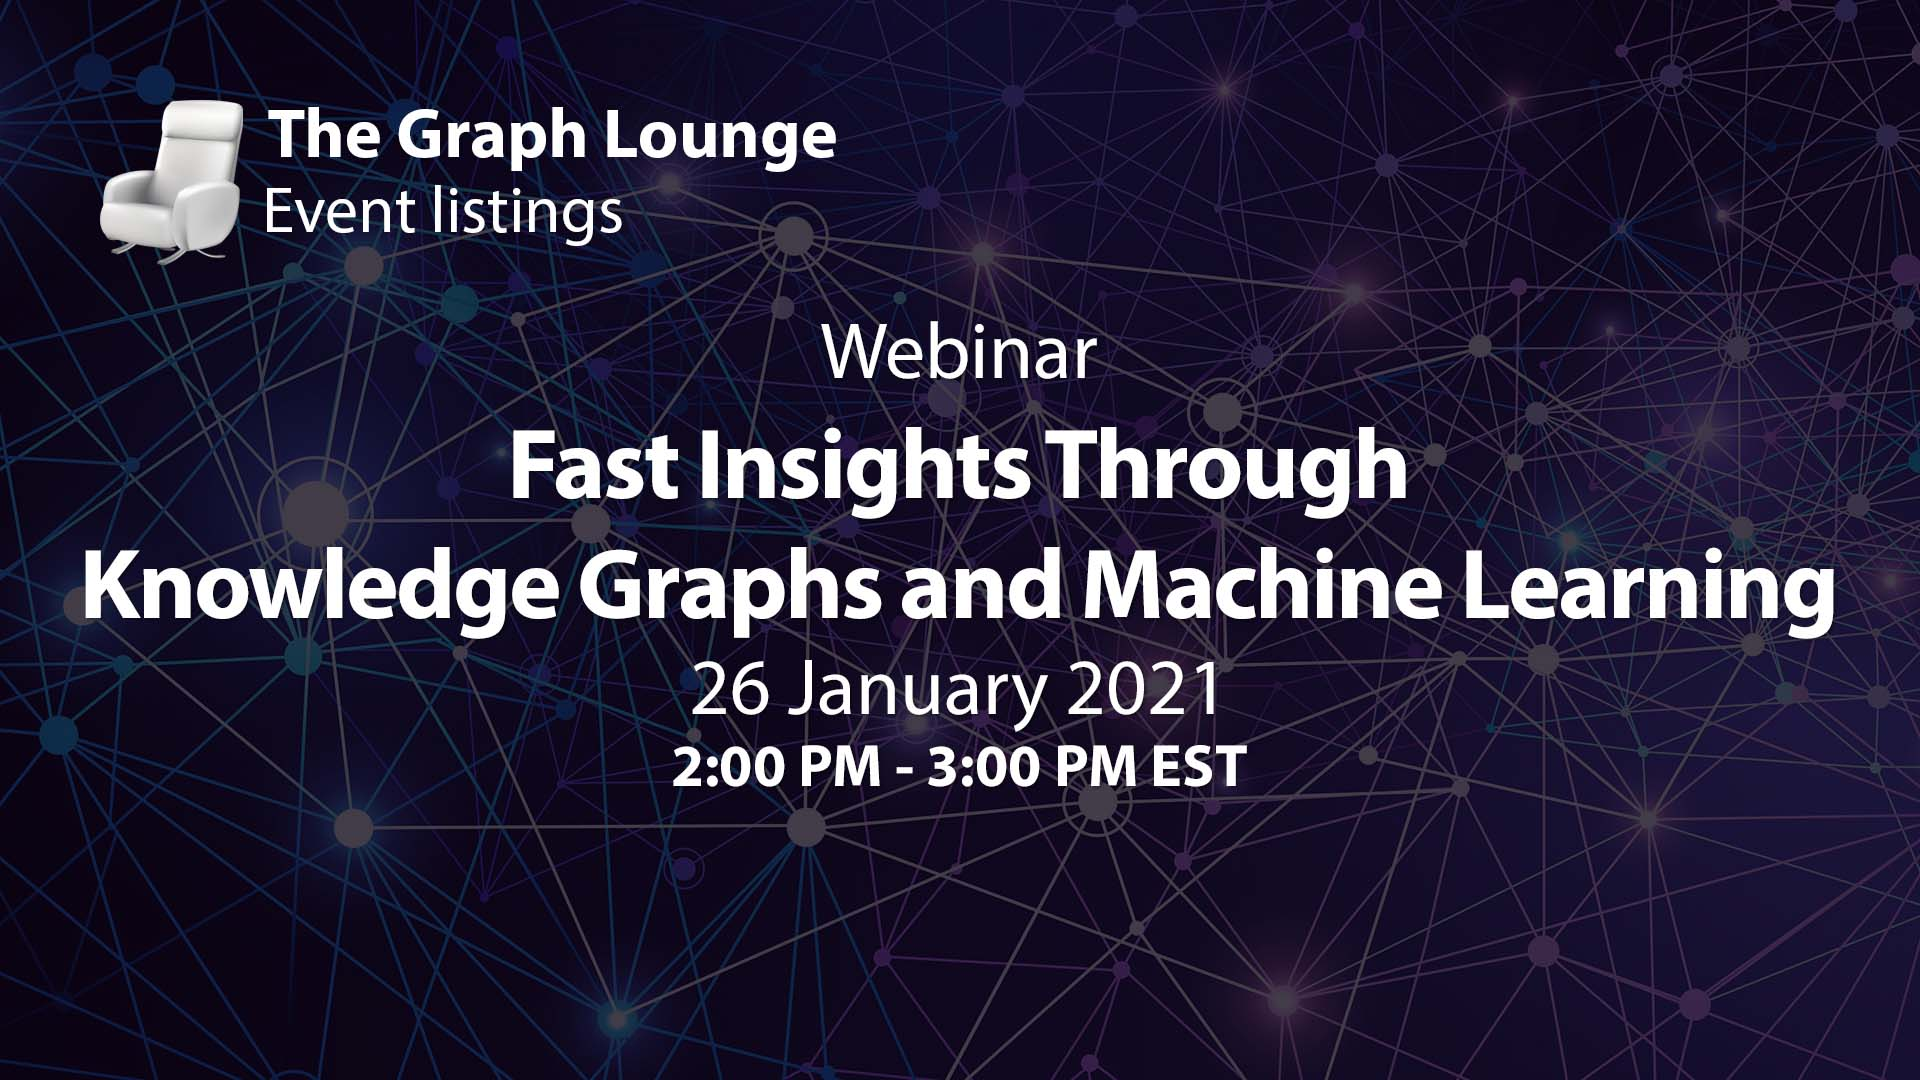 Fast Insights Through Knowledge Graphs and Machine Learning